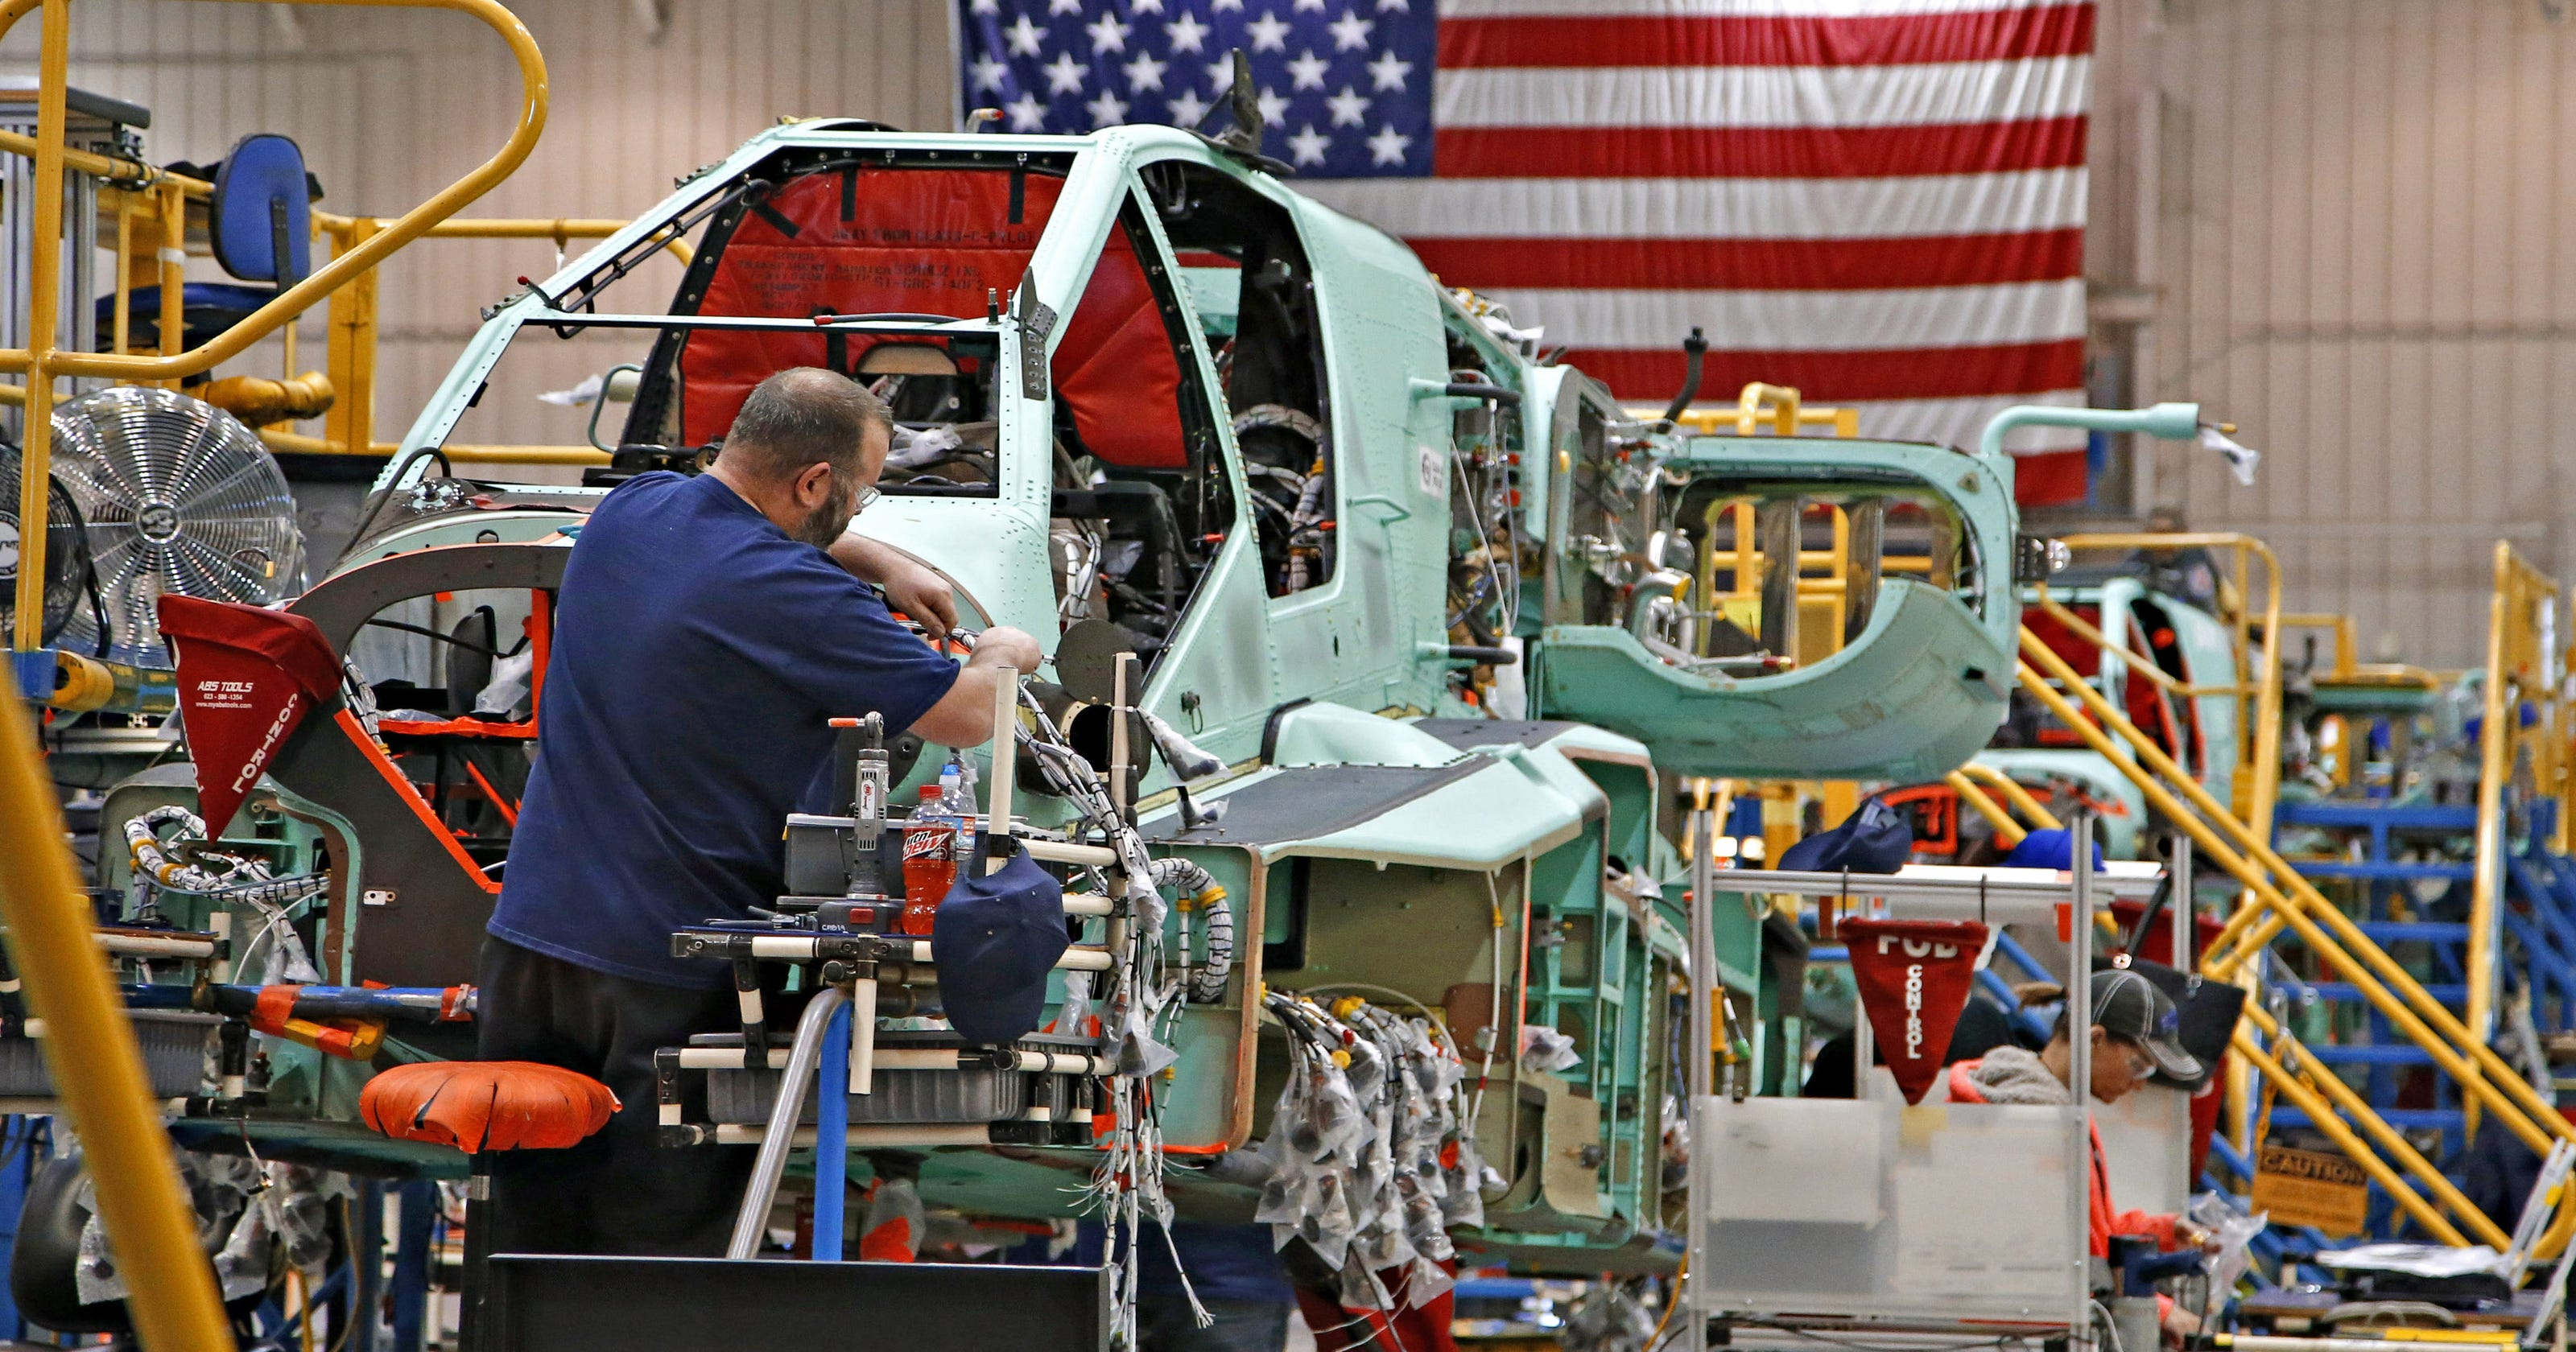 boeing wiring harness arizona made the boeing co   attack helicopters and more  arizona made the boeing co   attack